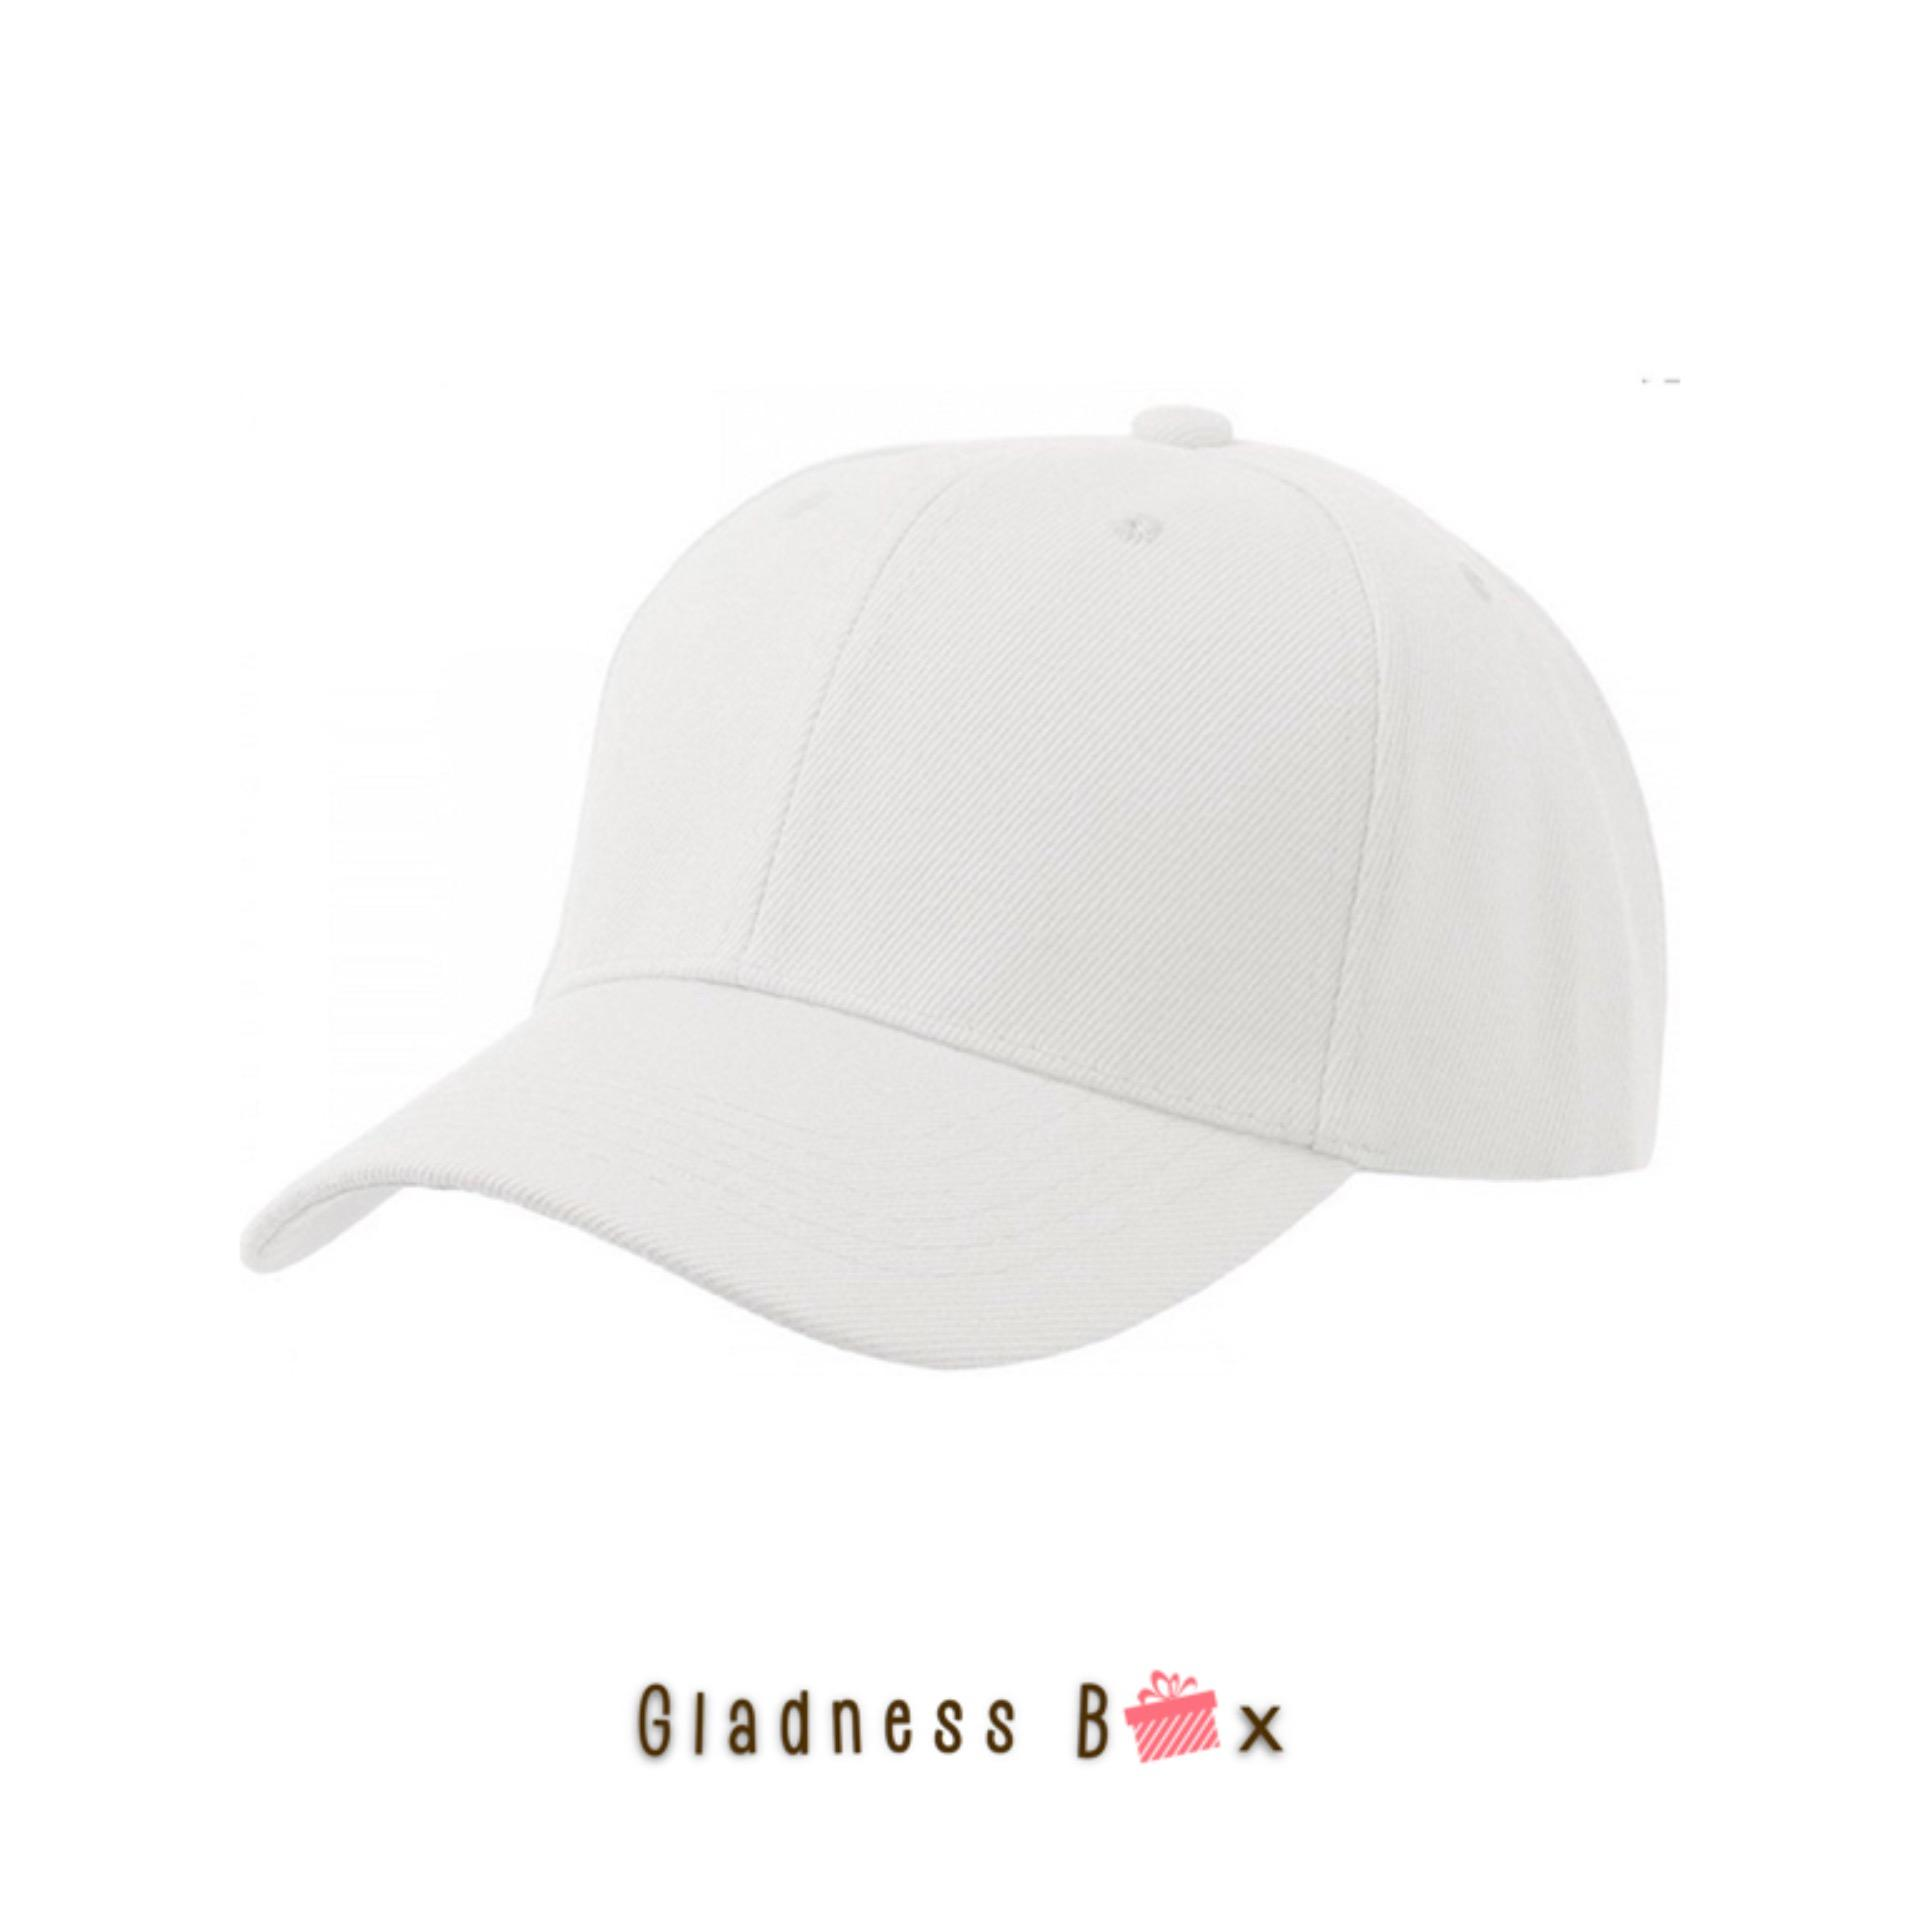 Gladness Box High Quality Plain Baseball Cap for Men Women Unisex 42007e0461